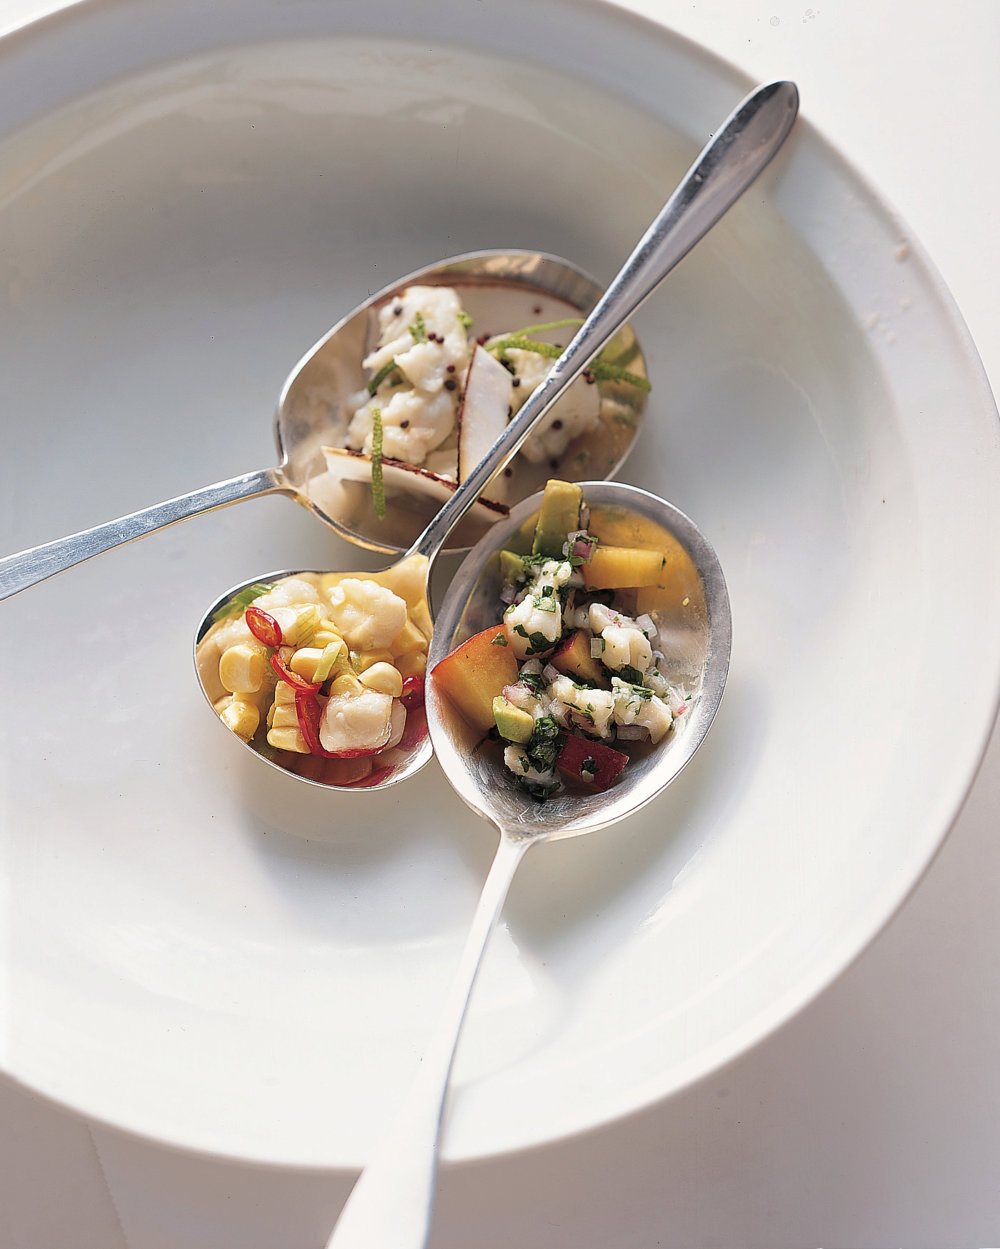 Fluke Ceviche with Corn, Scallions, and Chiles